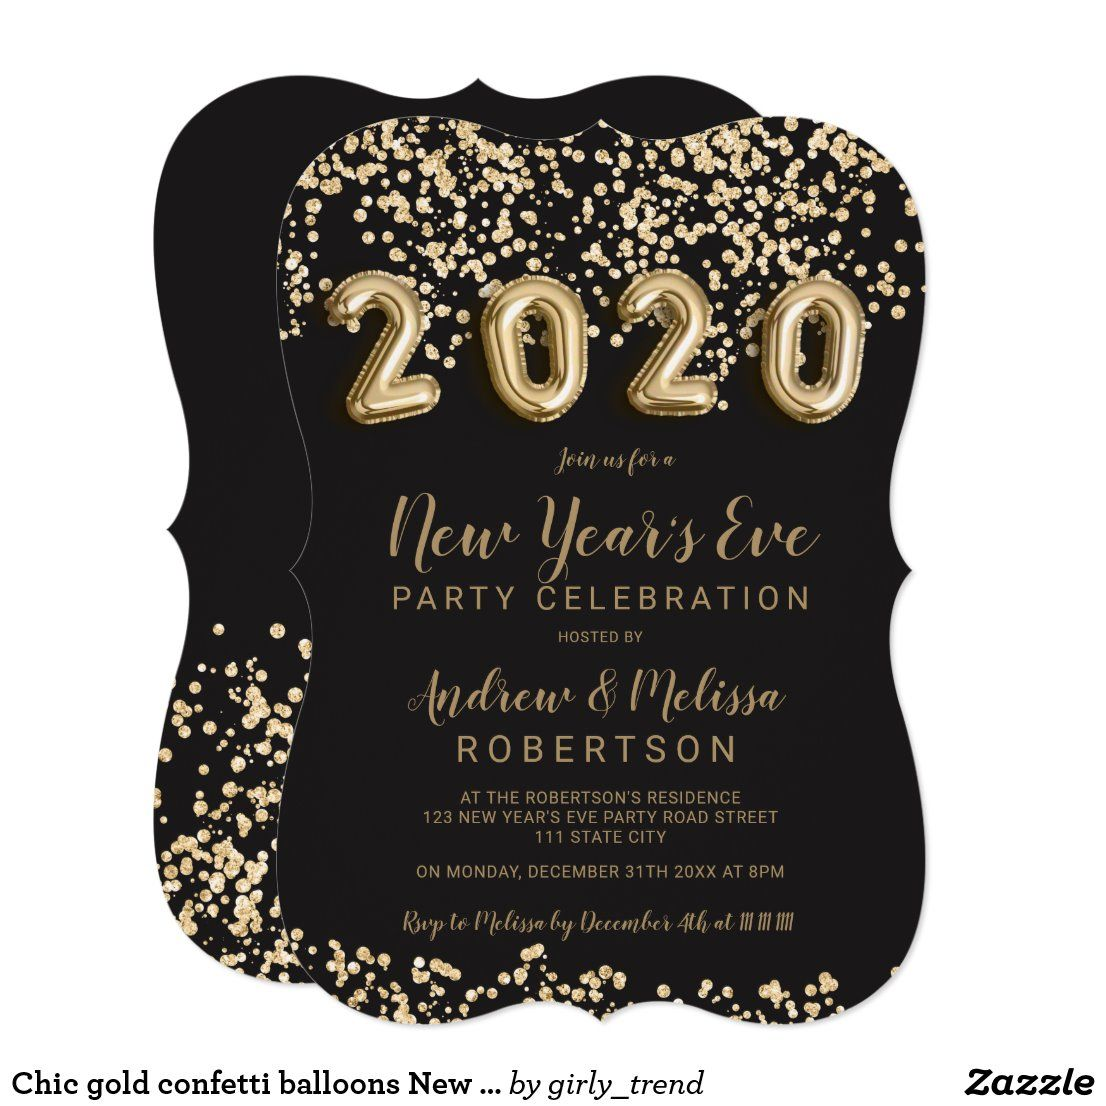 400+ Best New Years Eve Invitations images | new years eve invitations,  beautiful invitations, invitations